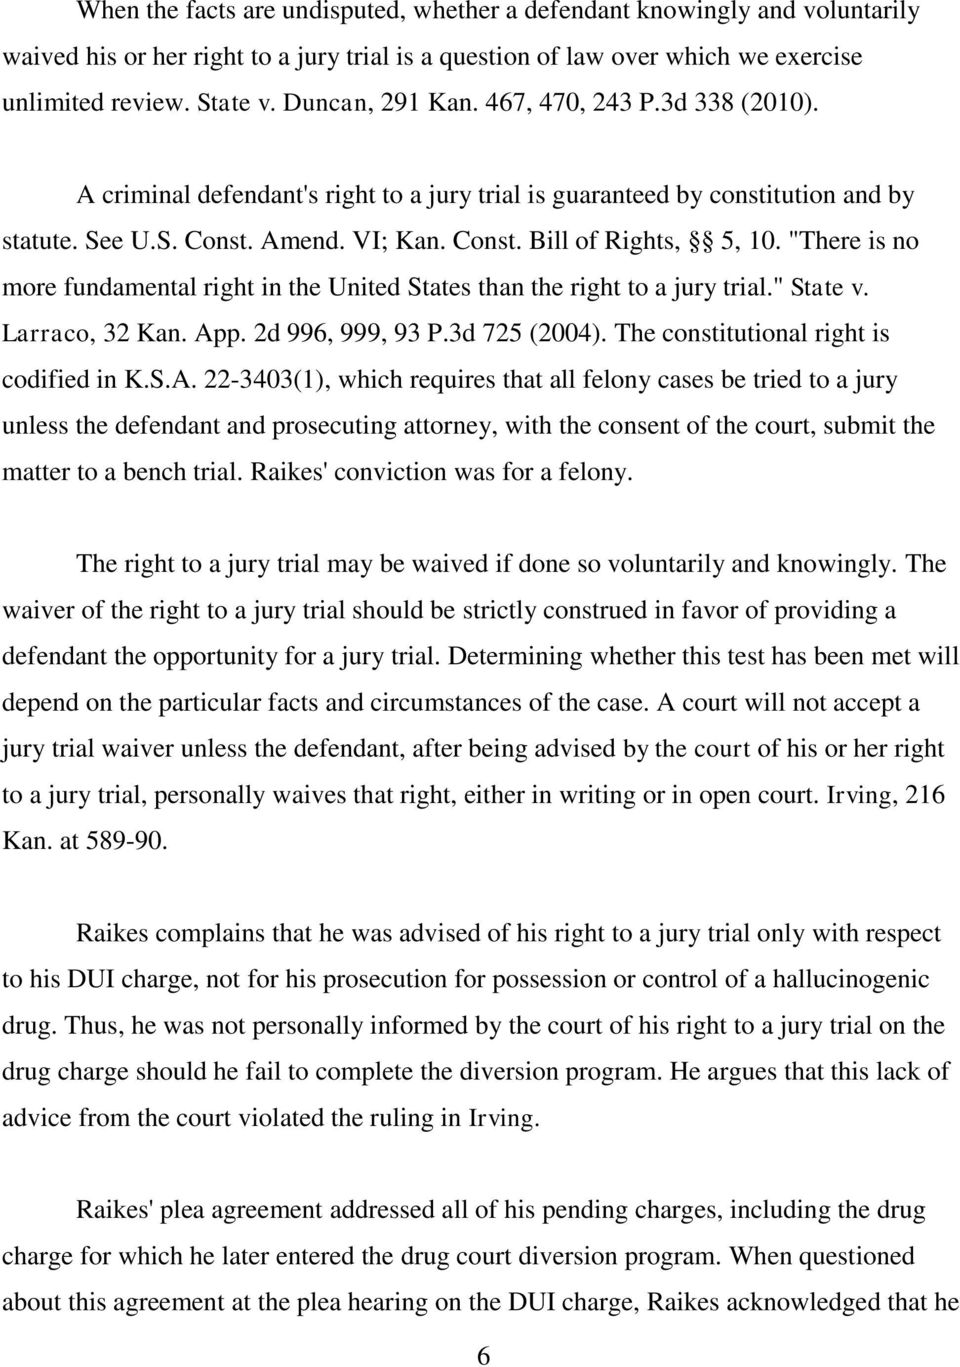 """There is no more fundamental right in the United States than the right to a jury trial."" State v. Larraco, 32 Kan. Ap"